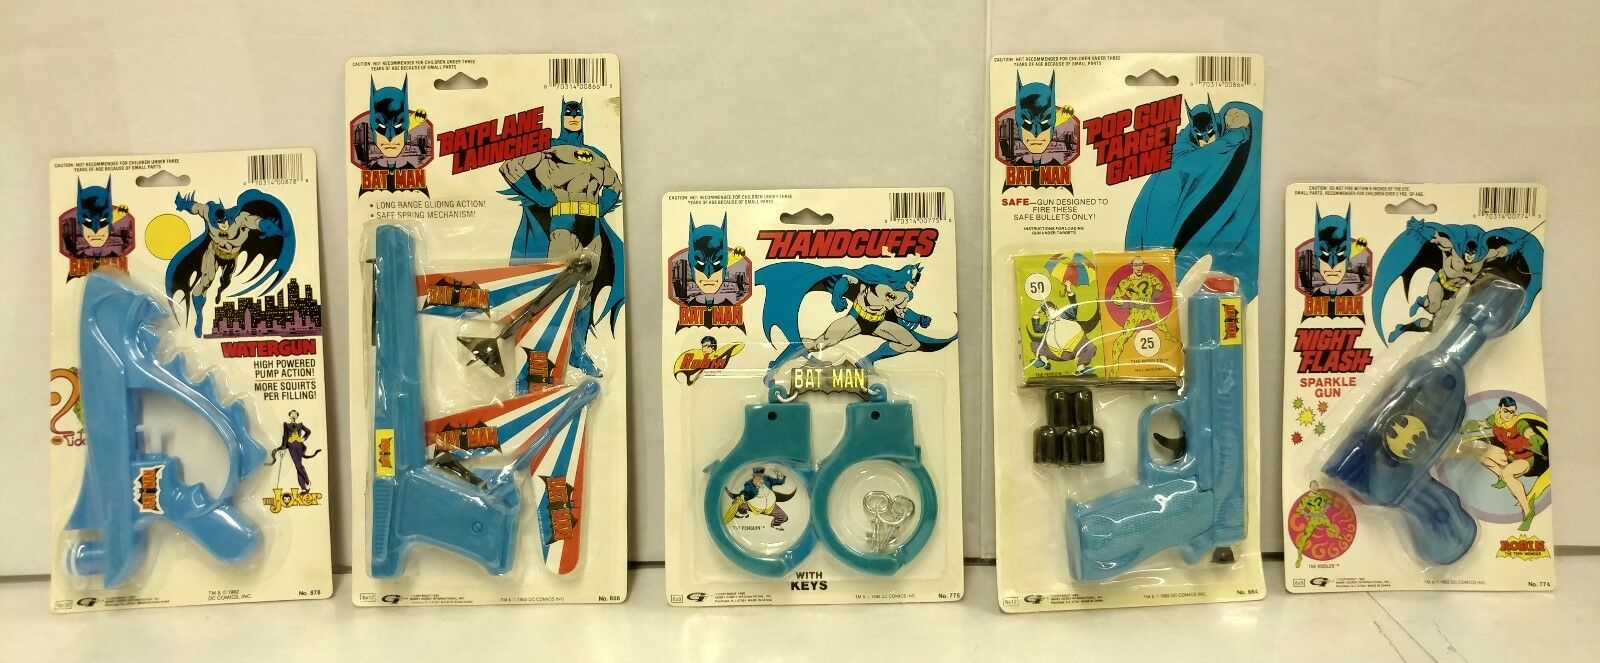 BATMAN 1988 1989 SEALED Batman DC Comics RARE Watergun Handcuffs Sparkle Gun NEW